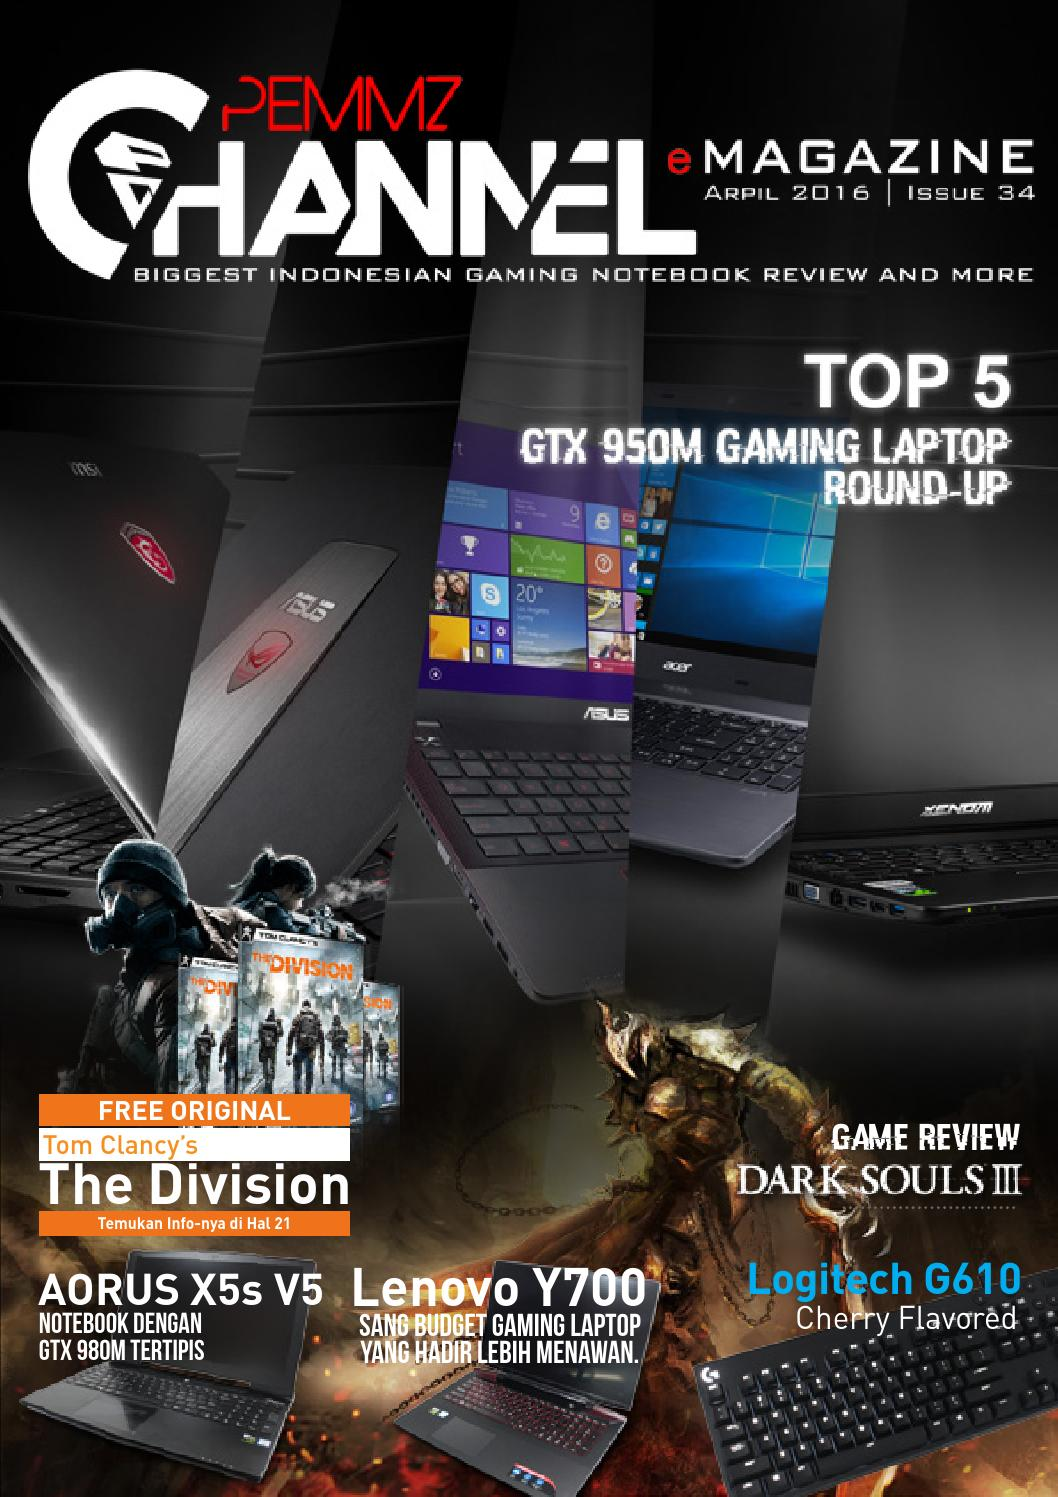 Pemmzchannel E Magazine April 2016 By Issuu Vga Card Pci Powercolor Ati Radeon R7 370 4gb Gddr5 256bit Resmi